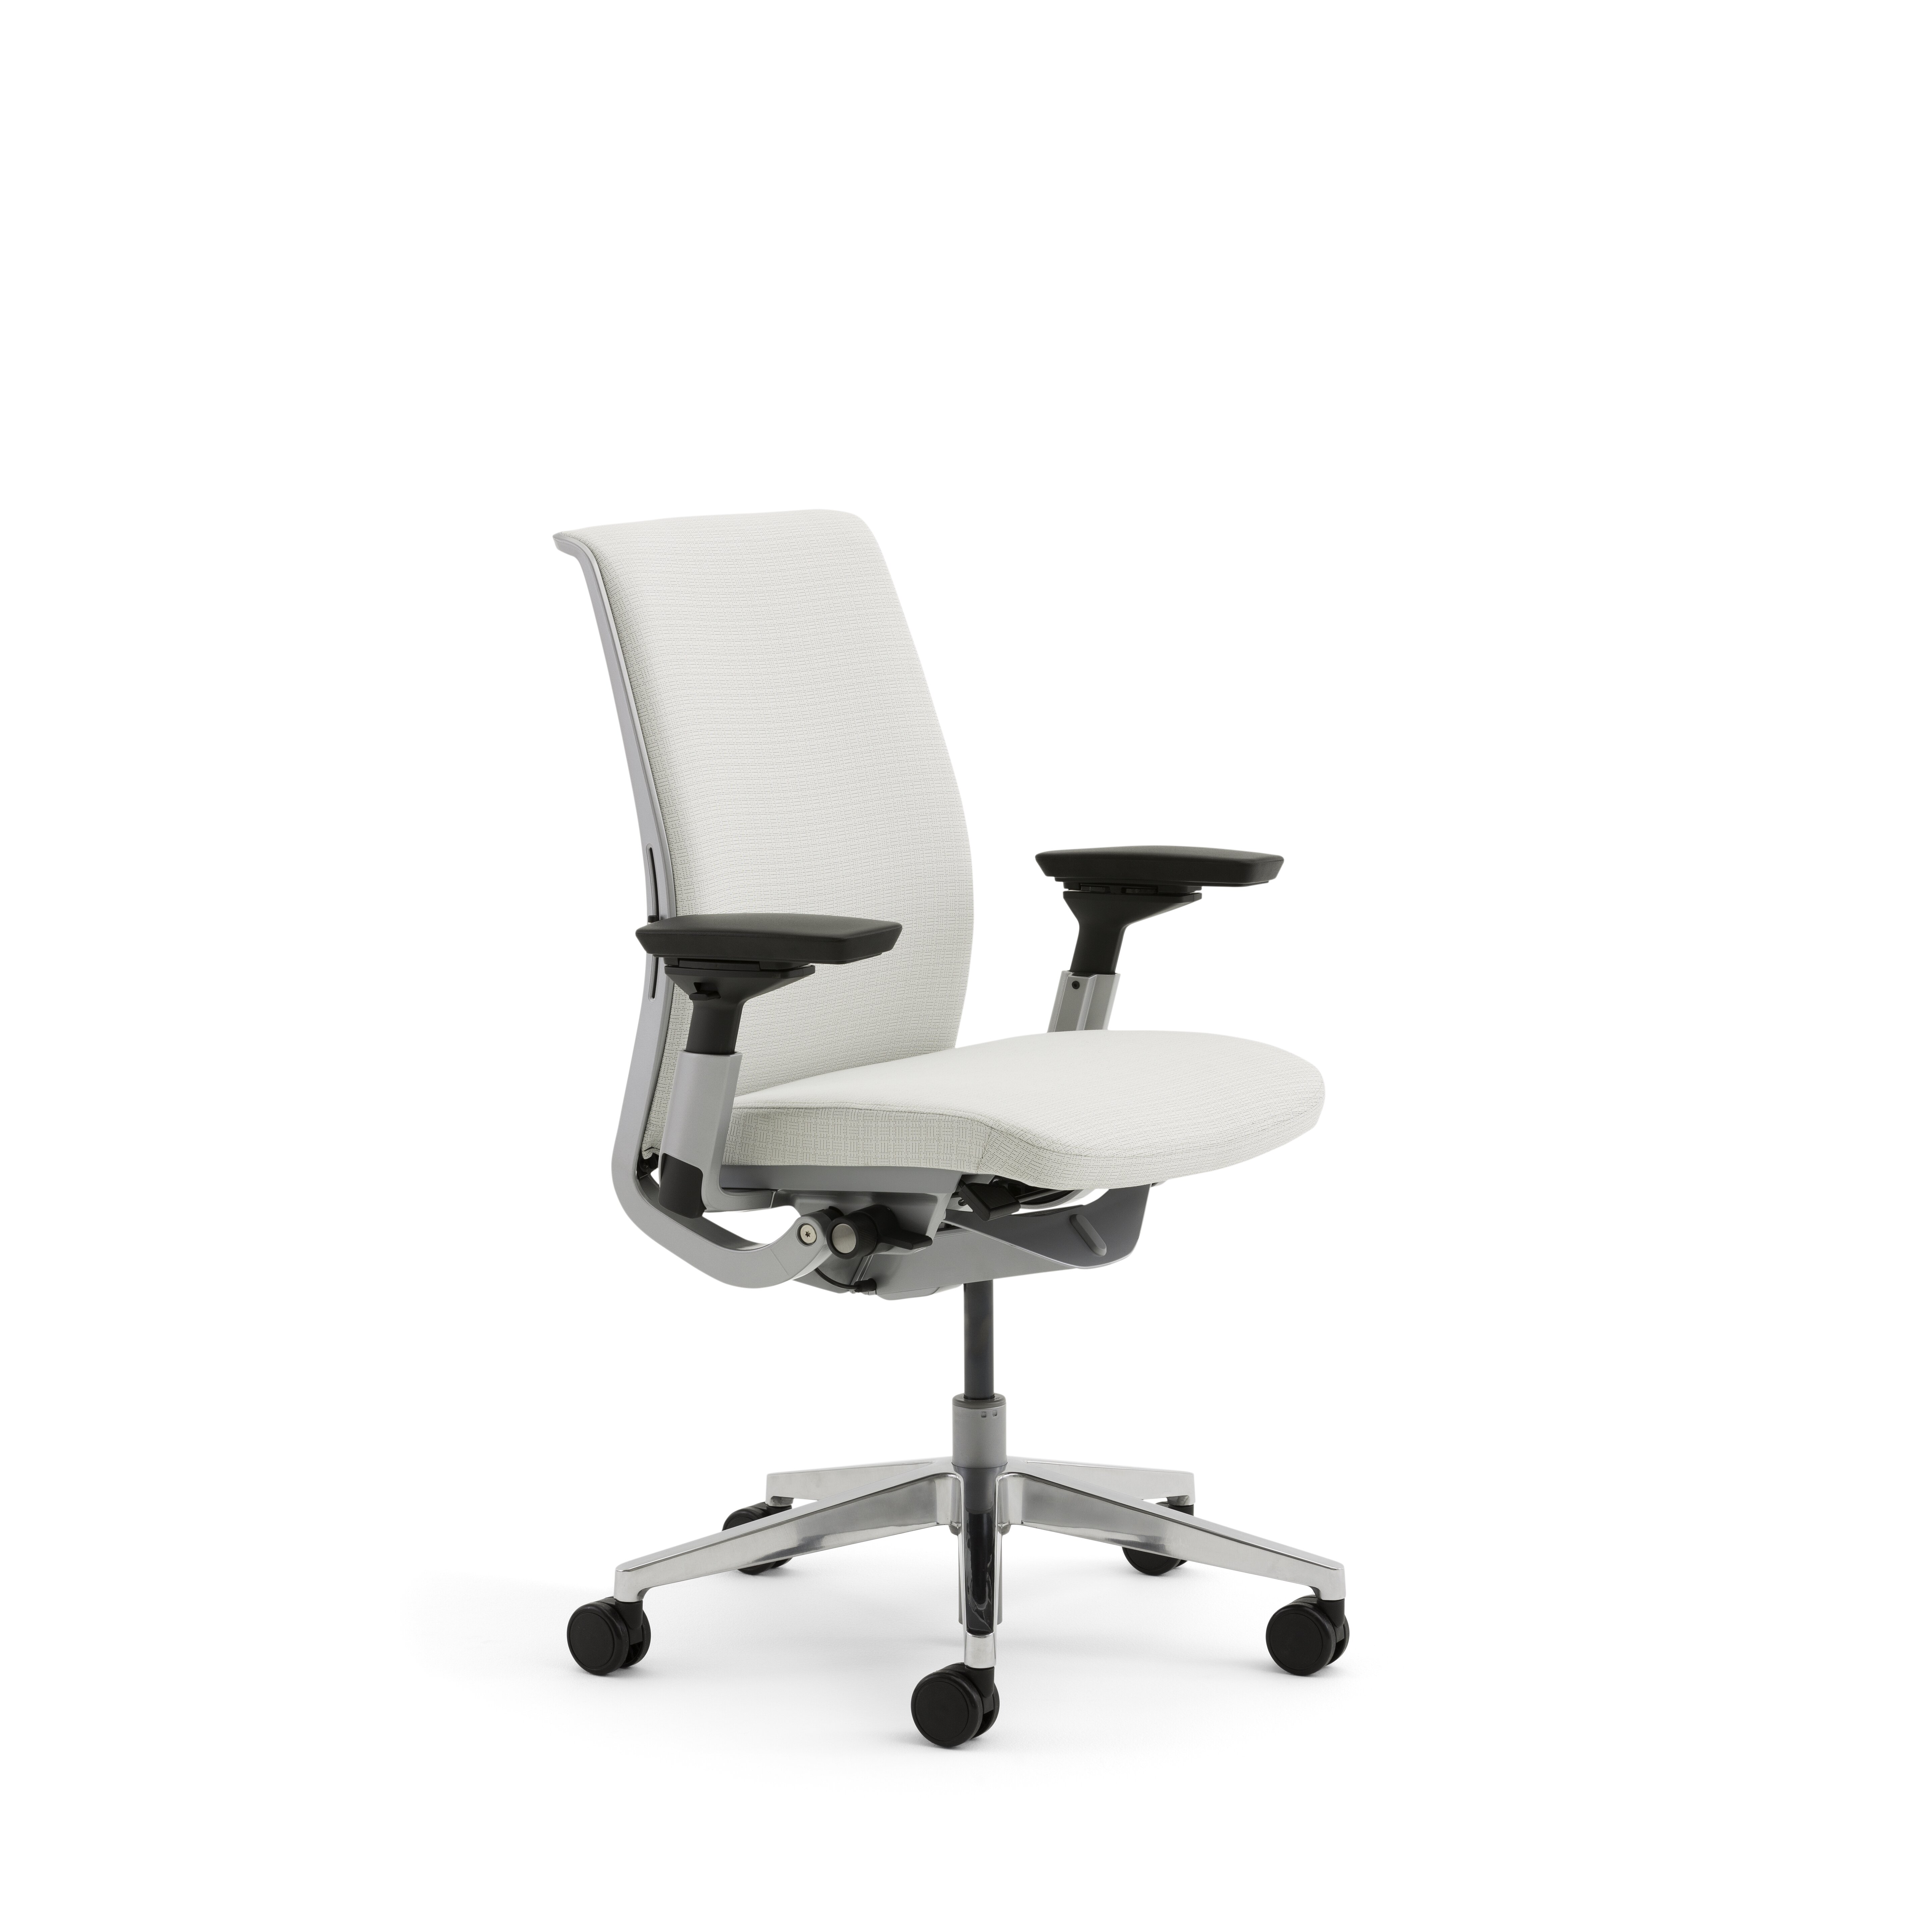 Steelcase think high back desk chair reviews wayfair for Steelcase chairs